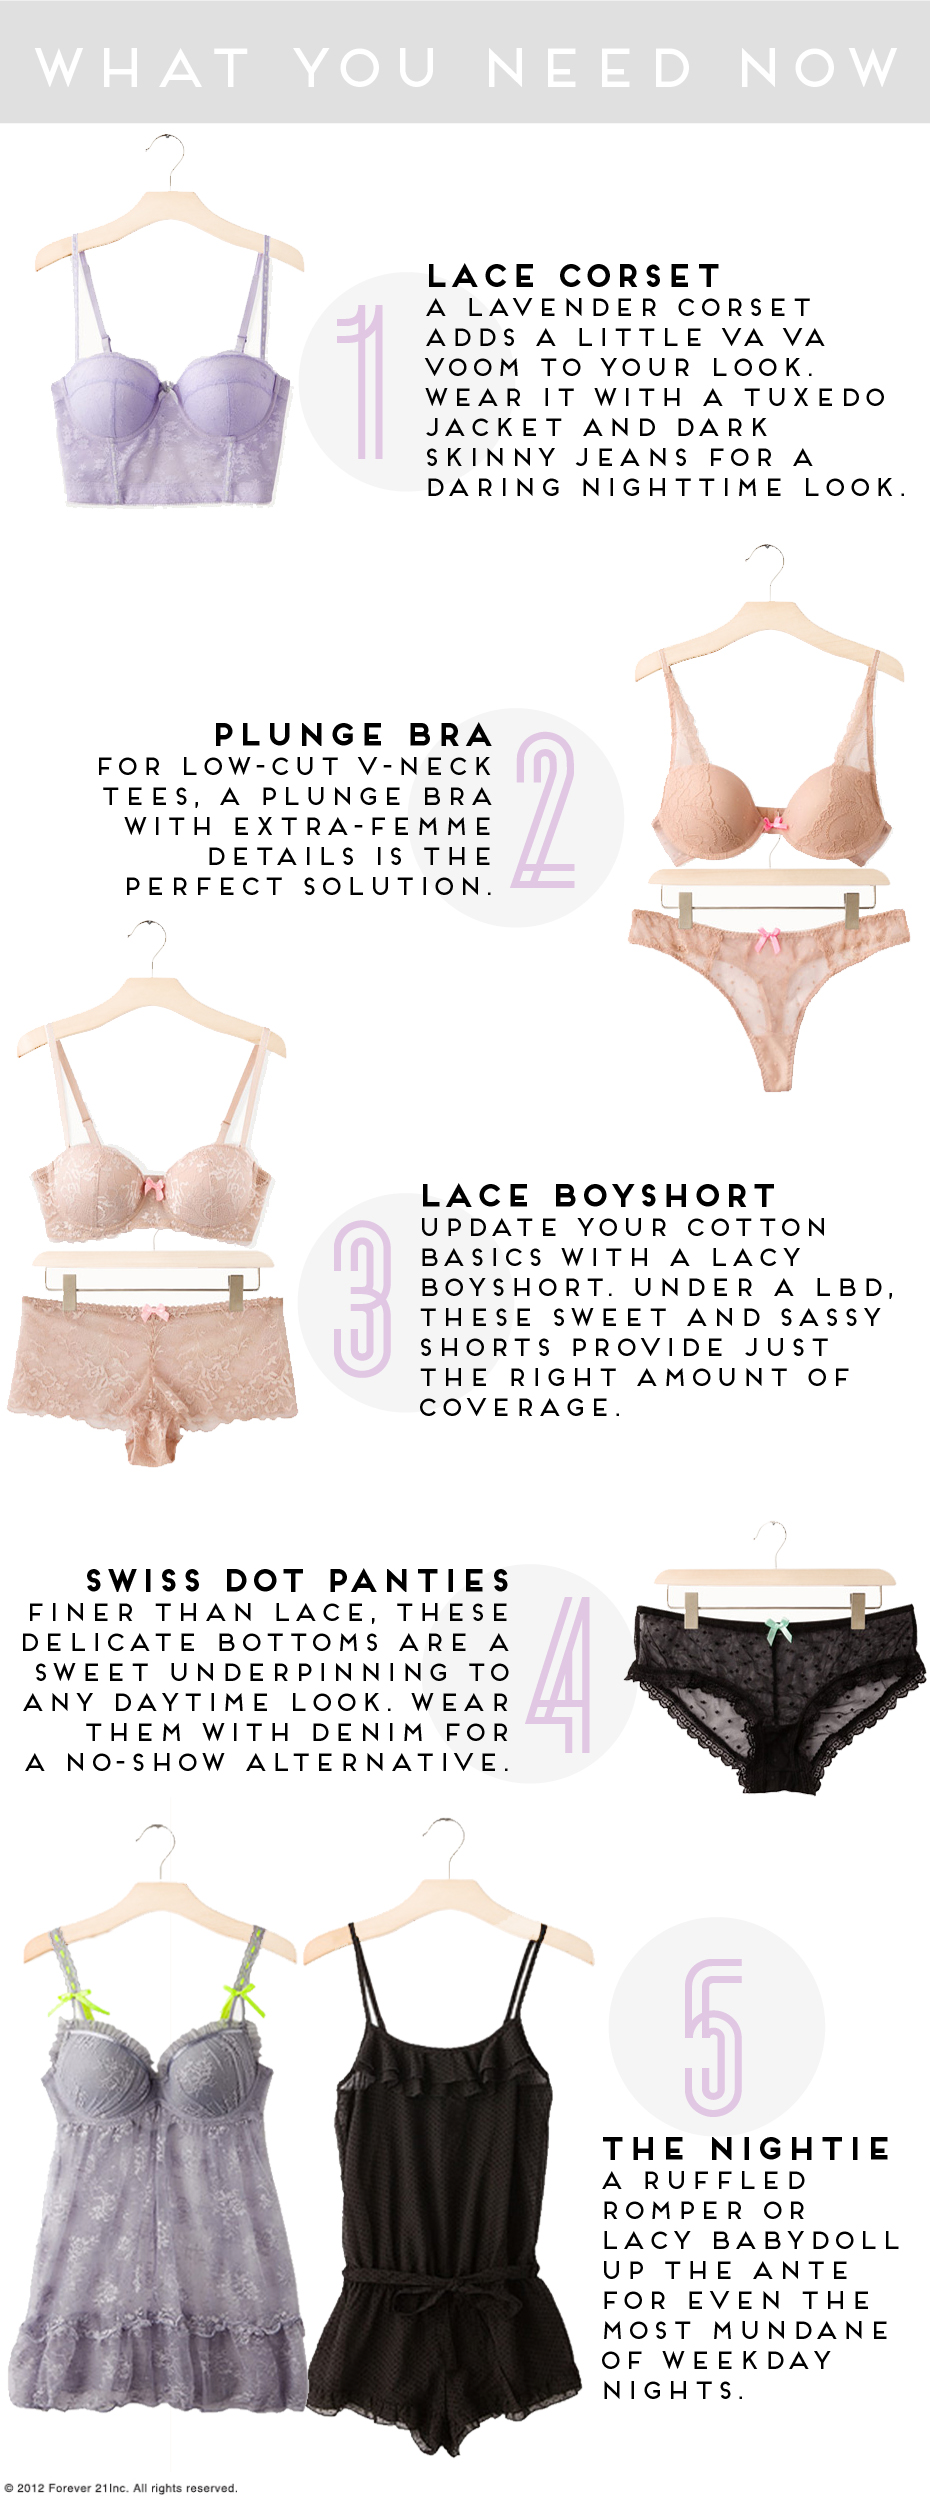 Valentine's Day Lingerie- What you need now